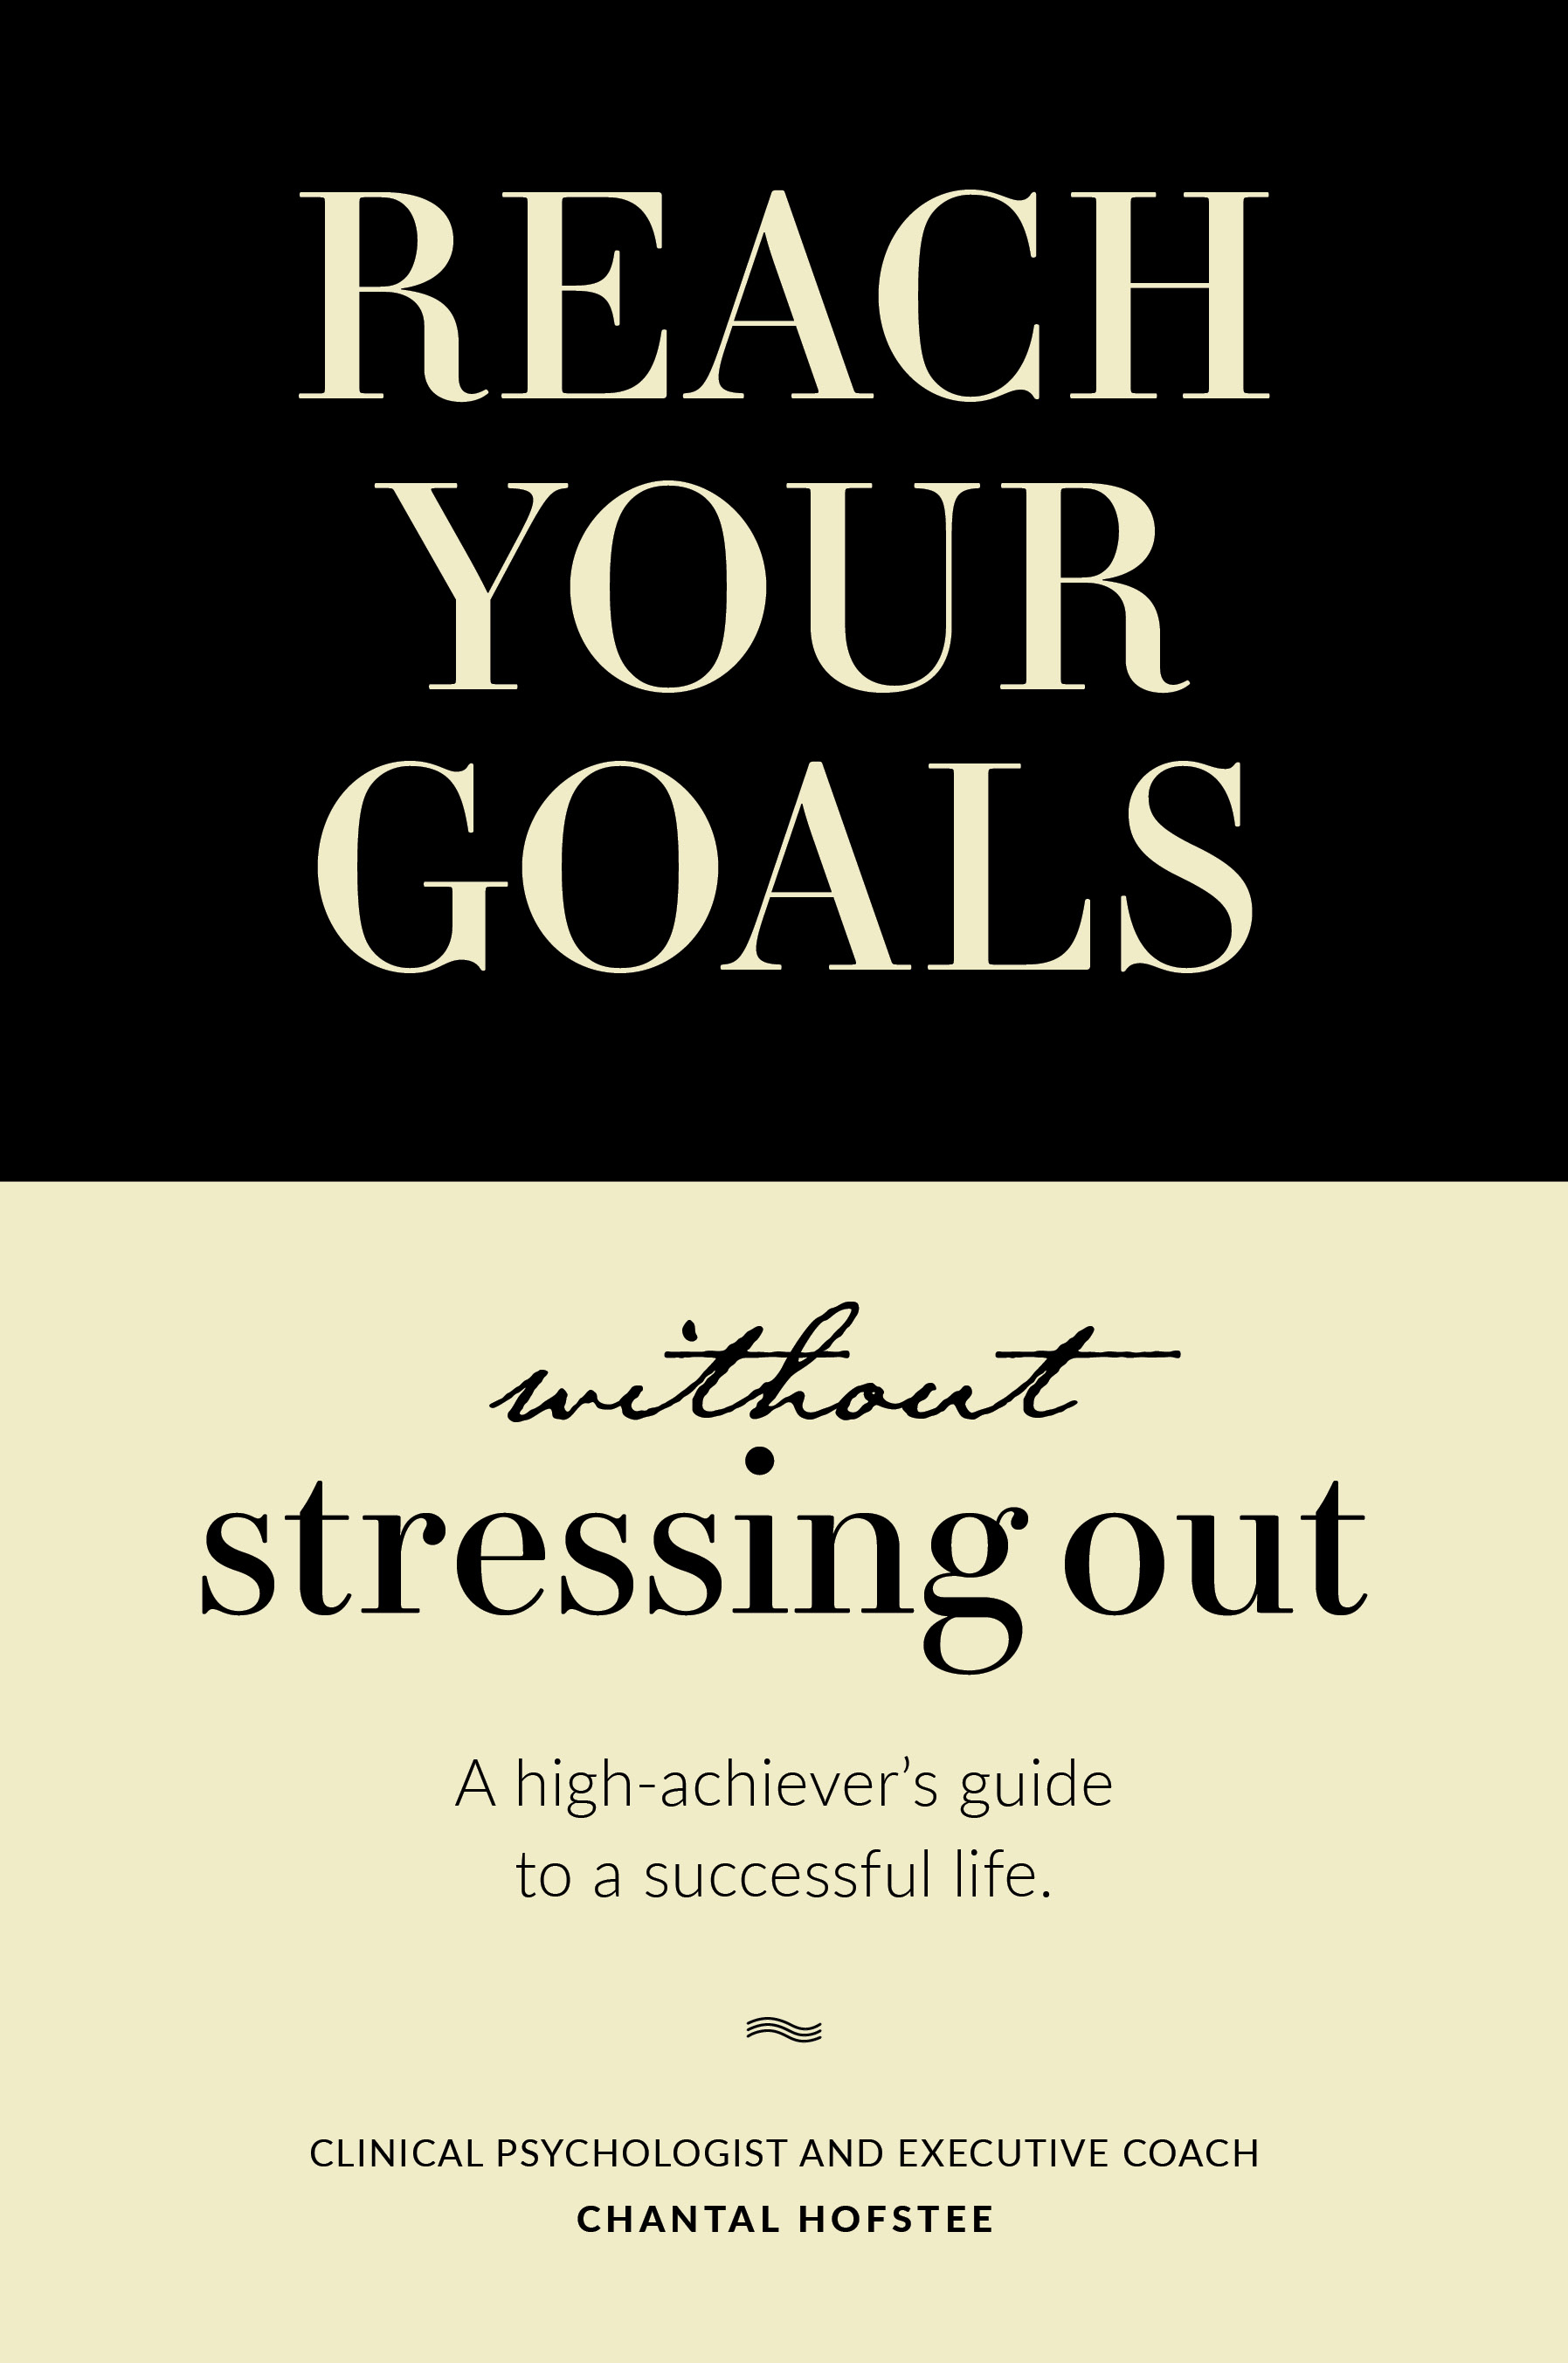 Reach Your Goals Without Stressing Out: A High-Achiever's Guide to a Successful Life